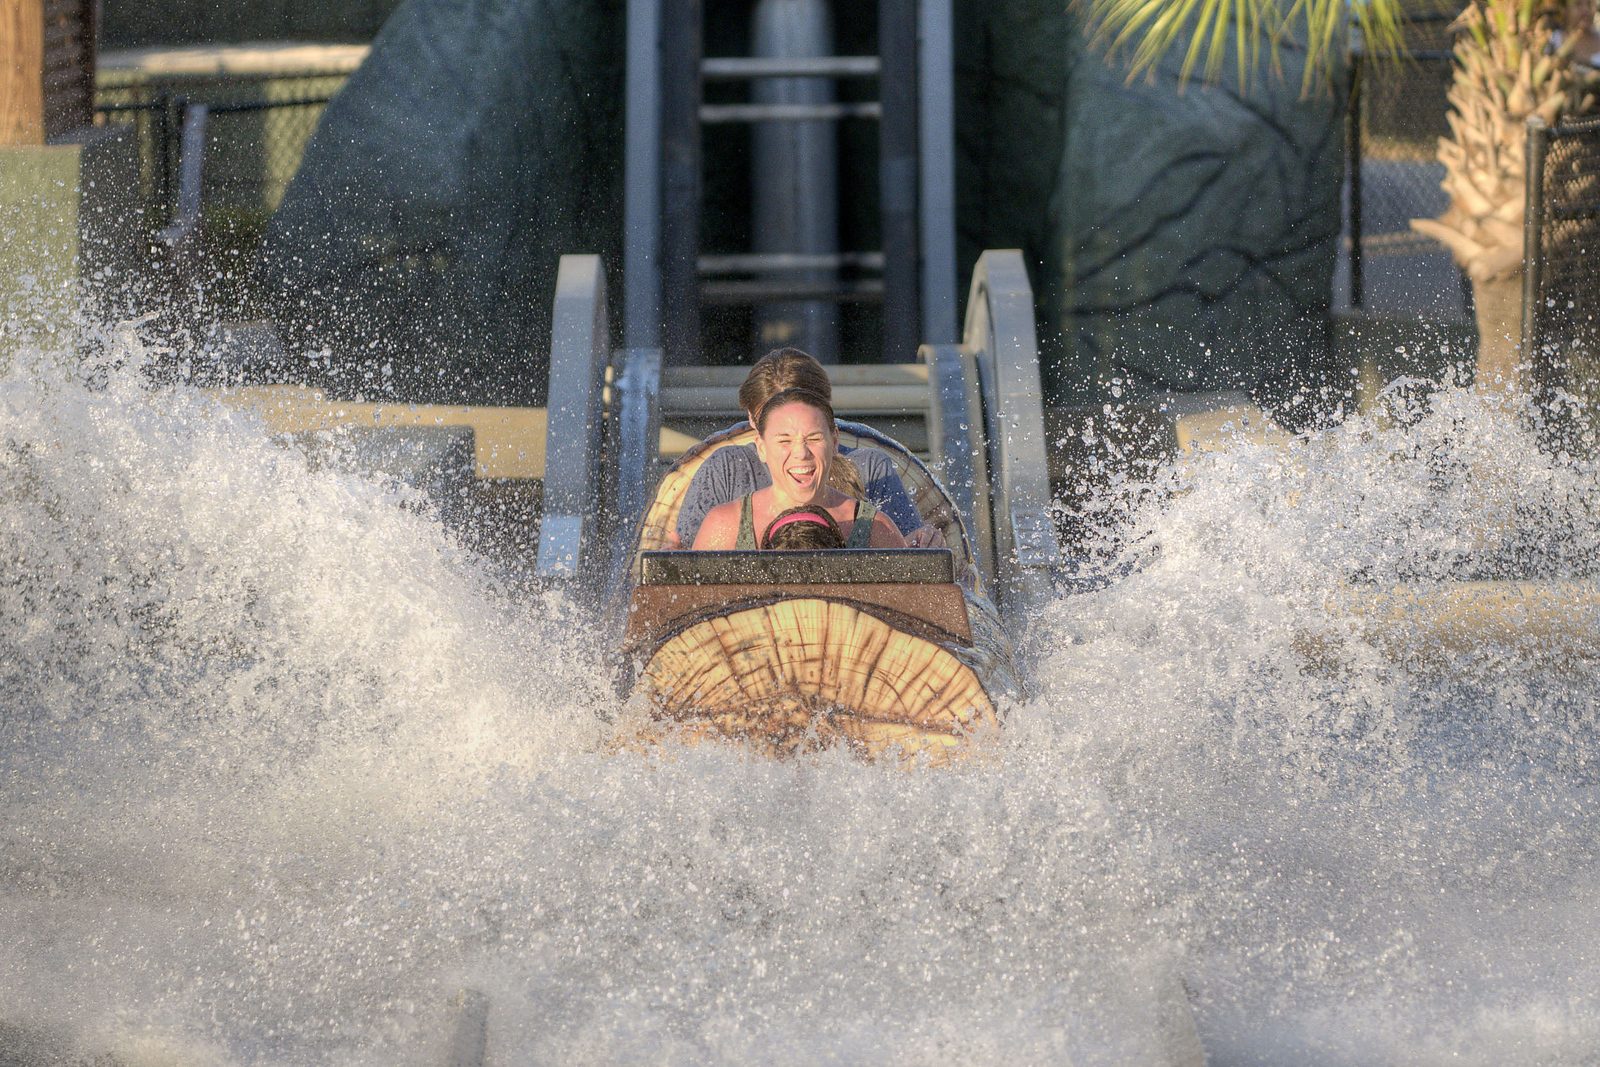 People take a splash in the water on the Log Flume at the Family Kingdom Amusement Park in Myrtle Beach, SC on Saturday, August 31, 2013. Copyright 2013 Jason Barnette